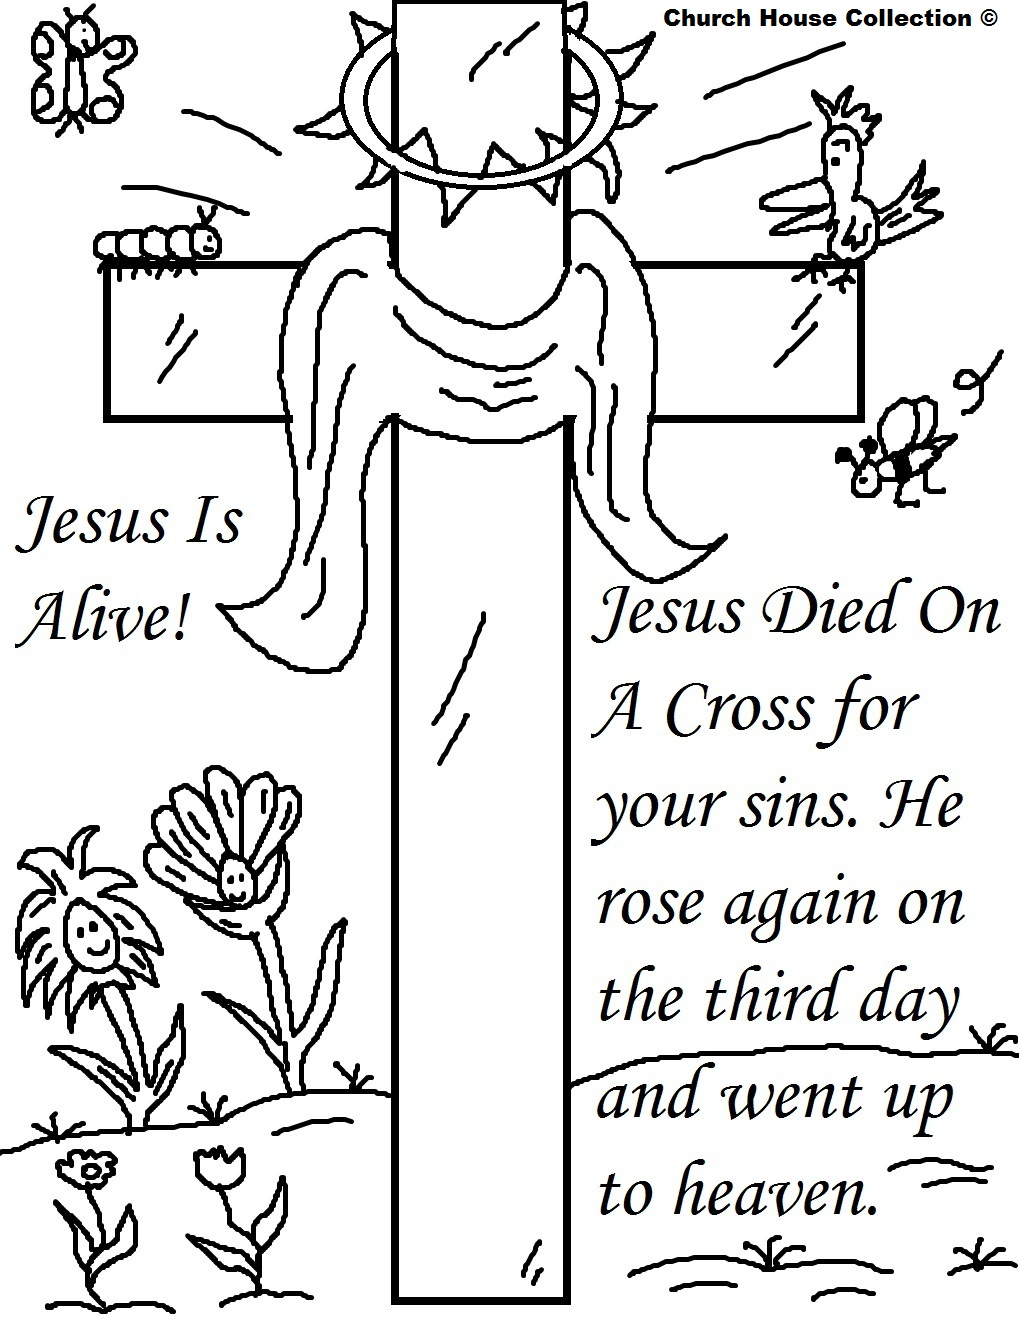 Easter Drawing For Kids at GetDrawings.com   Free for personal use ...